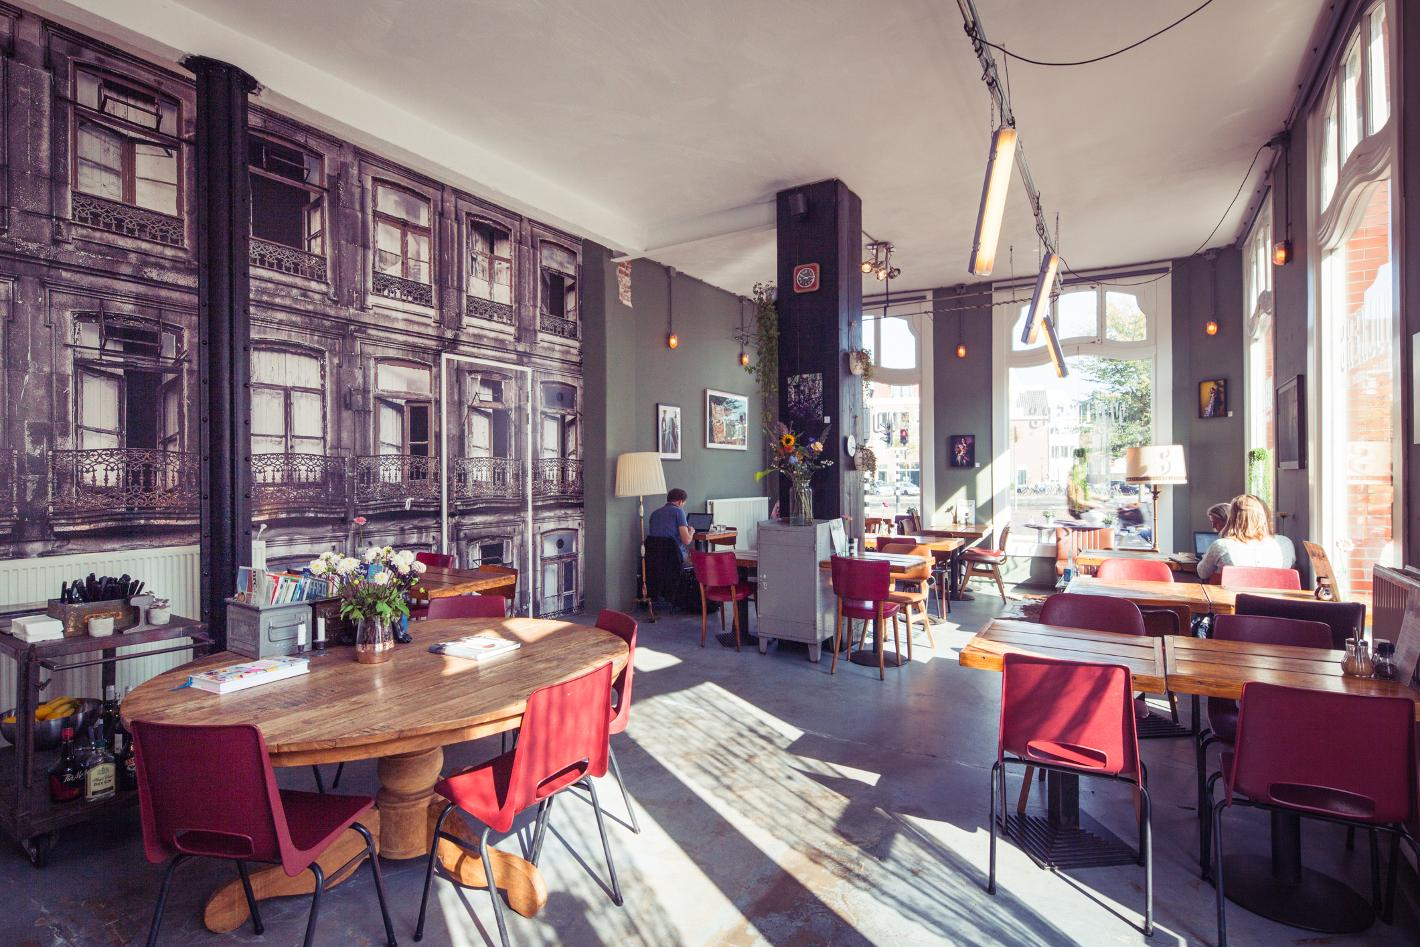 Photo Bar Wolkers in Haarlem, Eat & drink, Coffee, Lunch, Drink - #4